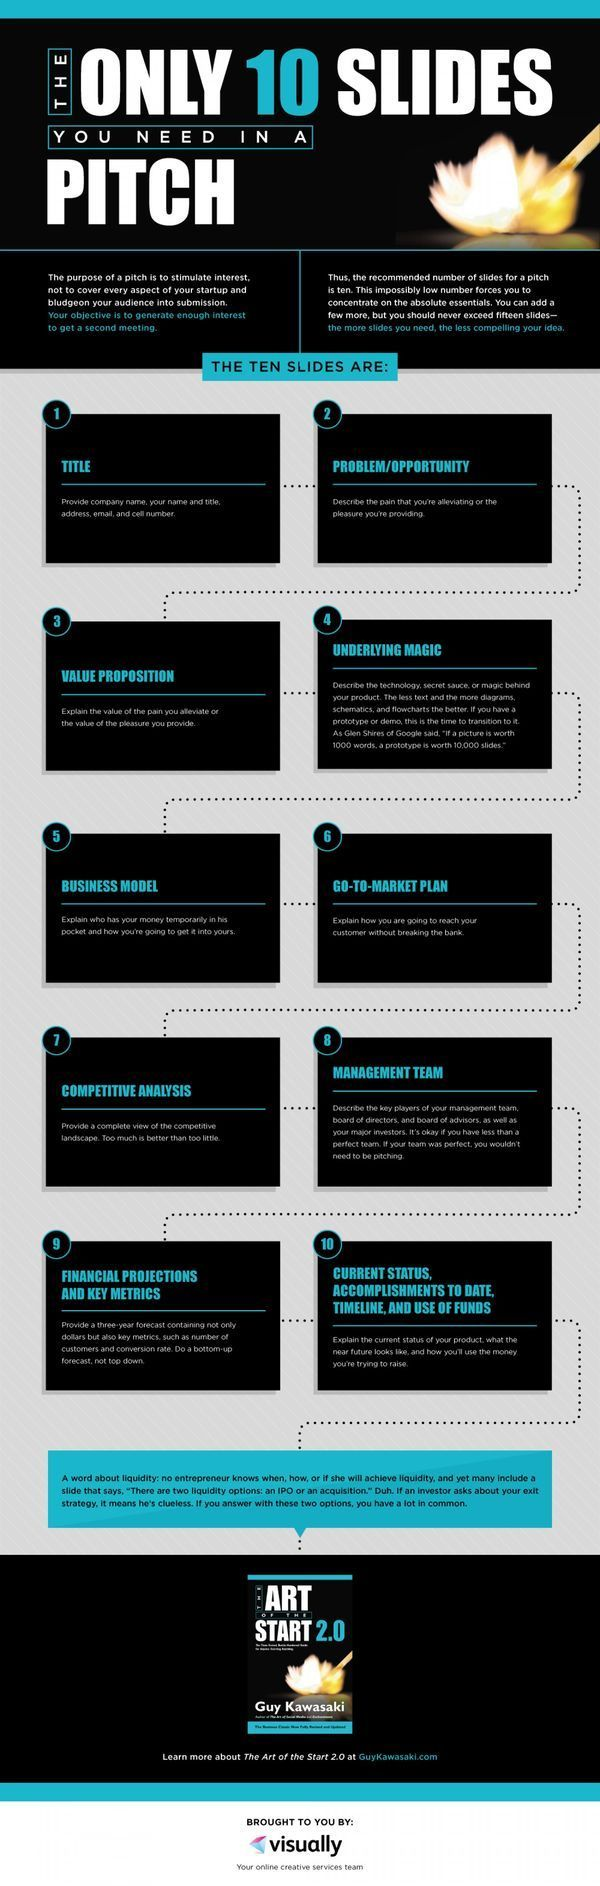 What Are The Only 10 Slides You Need In A Startup Pitch? #infographic Guy Kawasaki I look 4Ward to your feedback. Keep Digging for Worms! DR4WARD enjoys helping connect students and pros to learn about all forms of communication and creativity. He talks about, creates, and curates content on: Digital, Marketing, Advertising, Public Relations, Social Media, Journalism, Higher Ed, Innovation, Creativity, and Design. Curated global resources can be found here: https://www.rebelmouse.co...